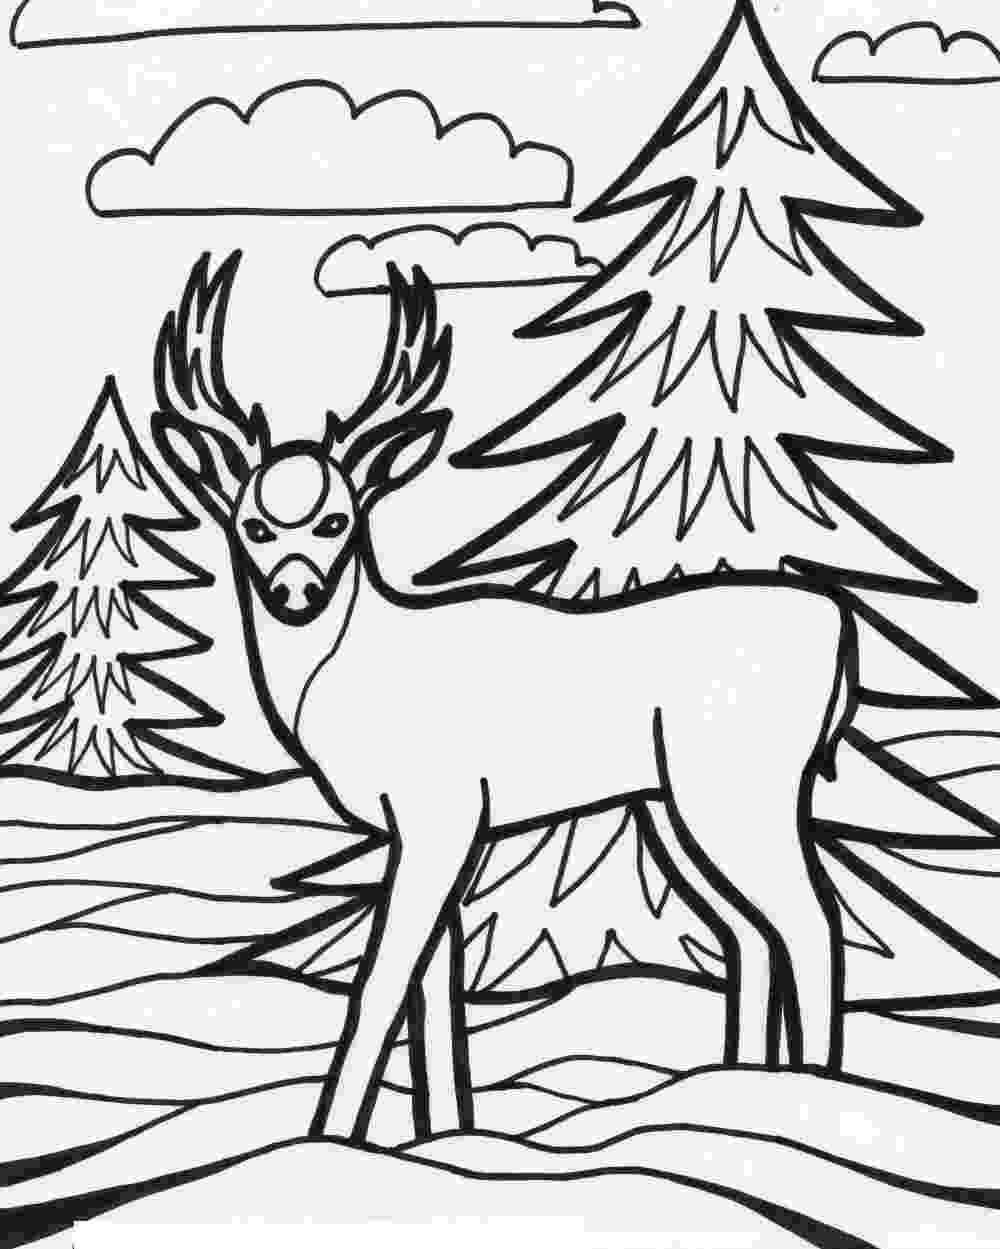 animal colouring pages free for education new animal deer coloring pages free animal colouring pages